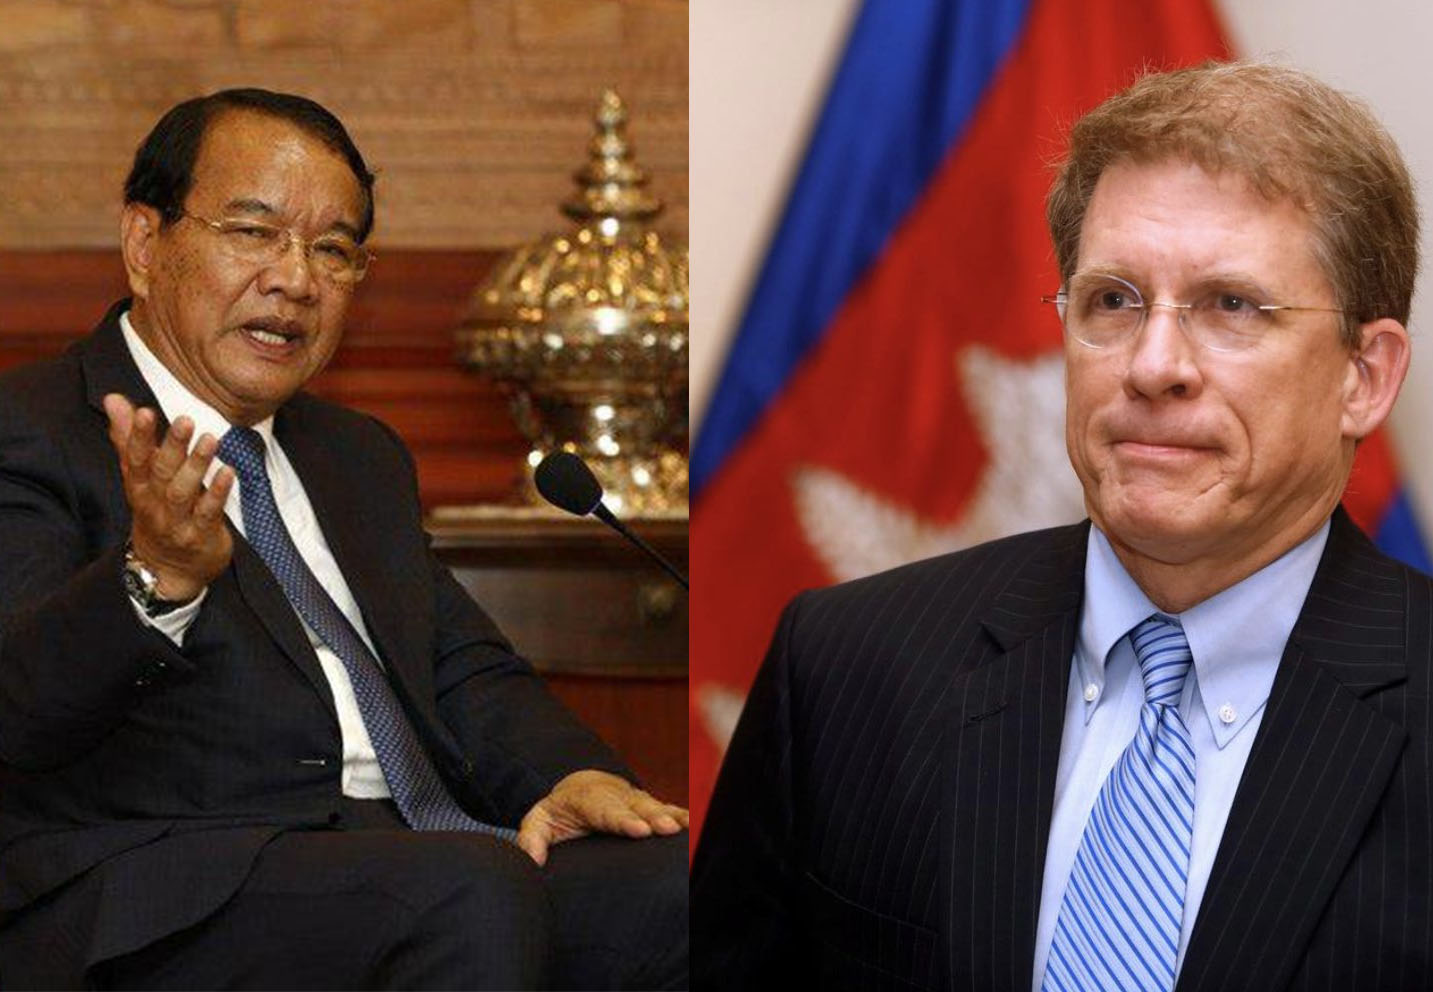 Cambodia's Foreign Affairs: Statement of US Ambassador to Cambodia on Kem Sokha's Trial Counters the Renewed Spirit of Cambodia-US Leaders